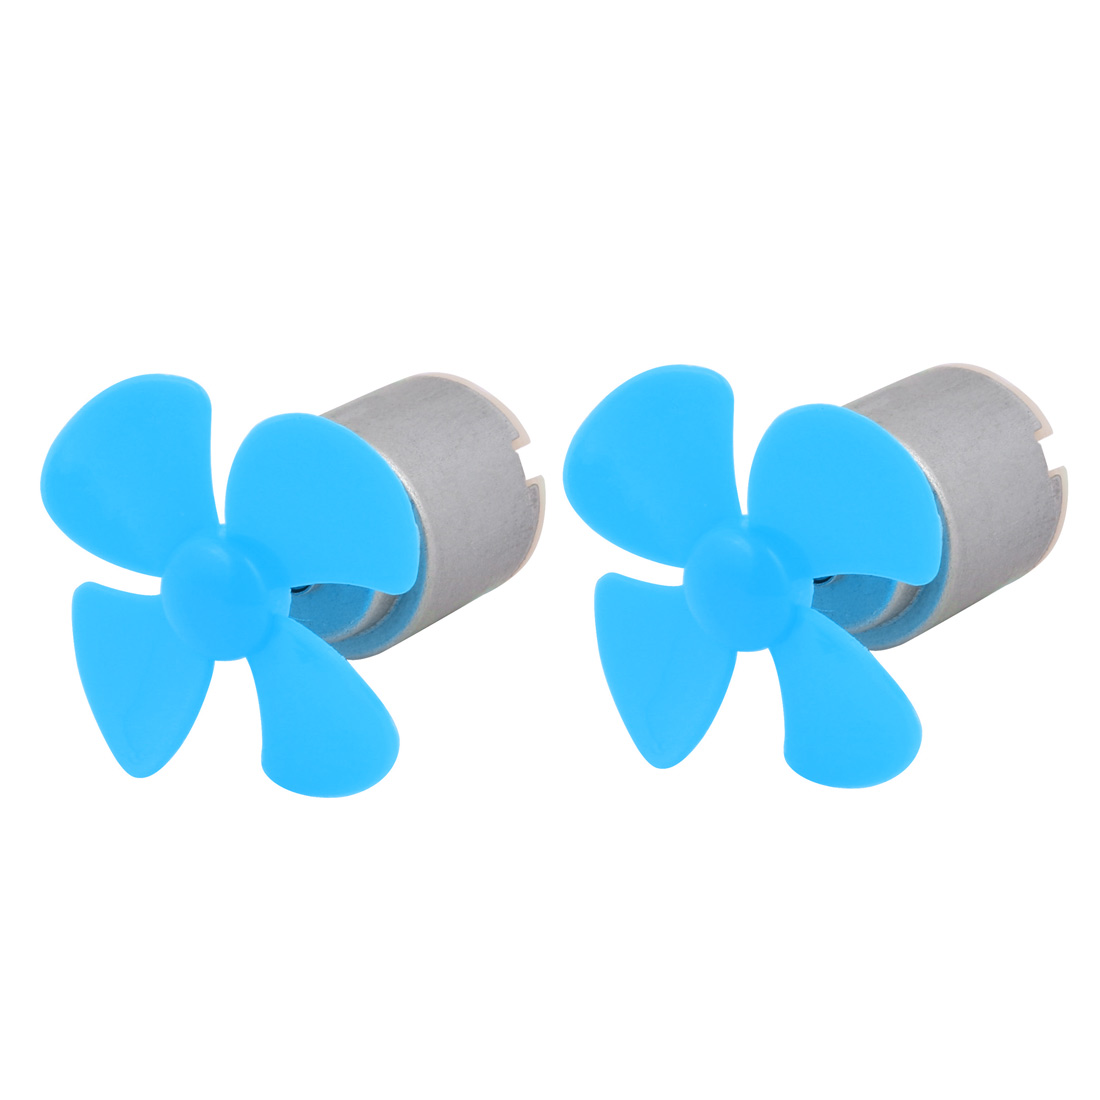 2Pcs DC 5V 9200RPM Large Torque Motor 4-Vane 40mm Dia Propeller Blue for RC Model